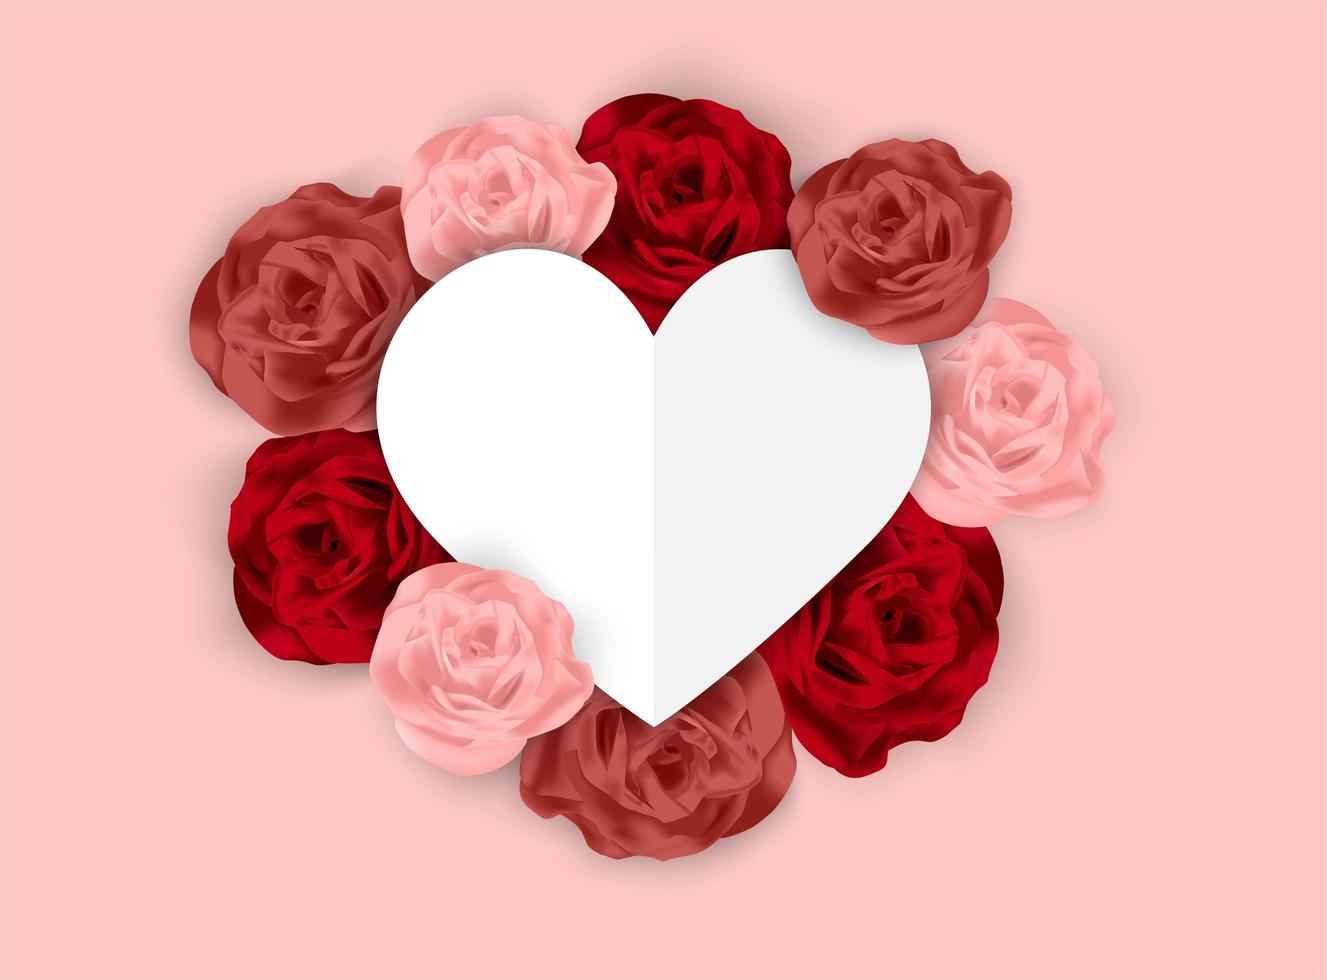 Valentines pink background with blank paper cut style heart surrounded by roses